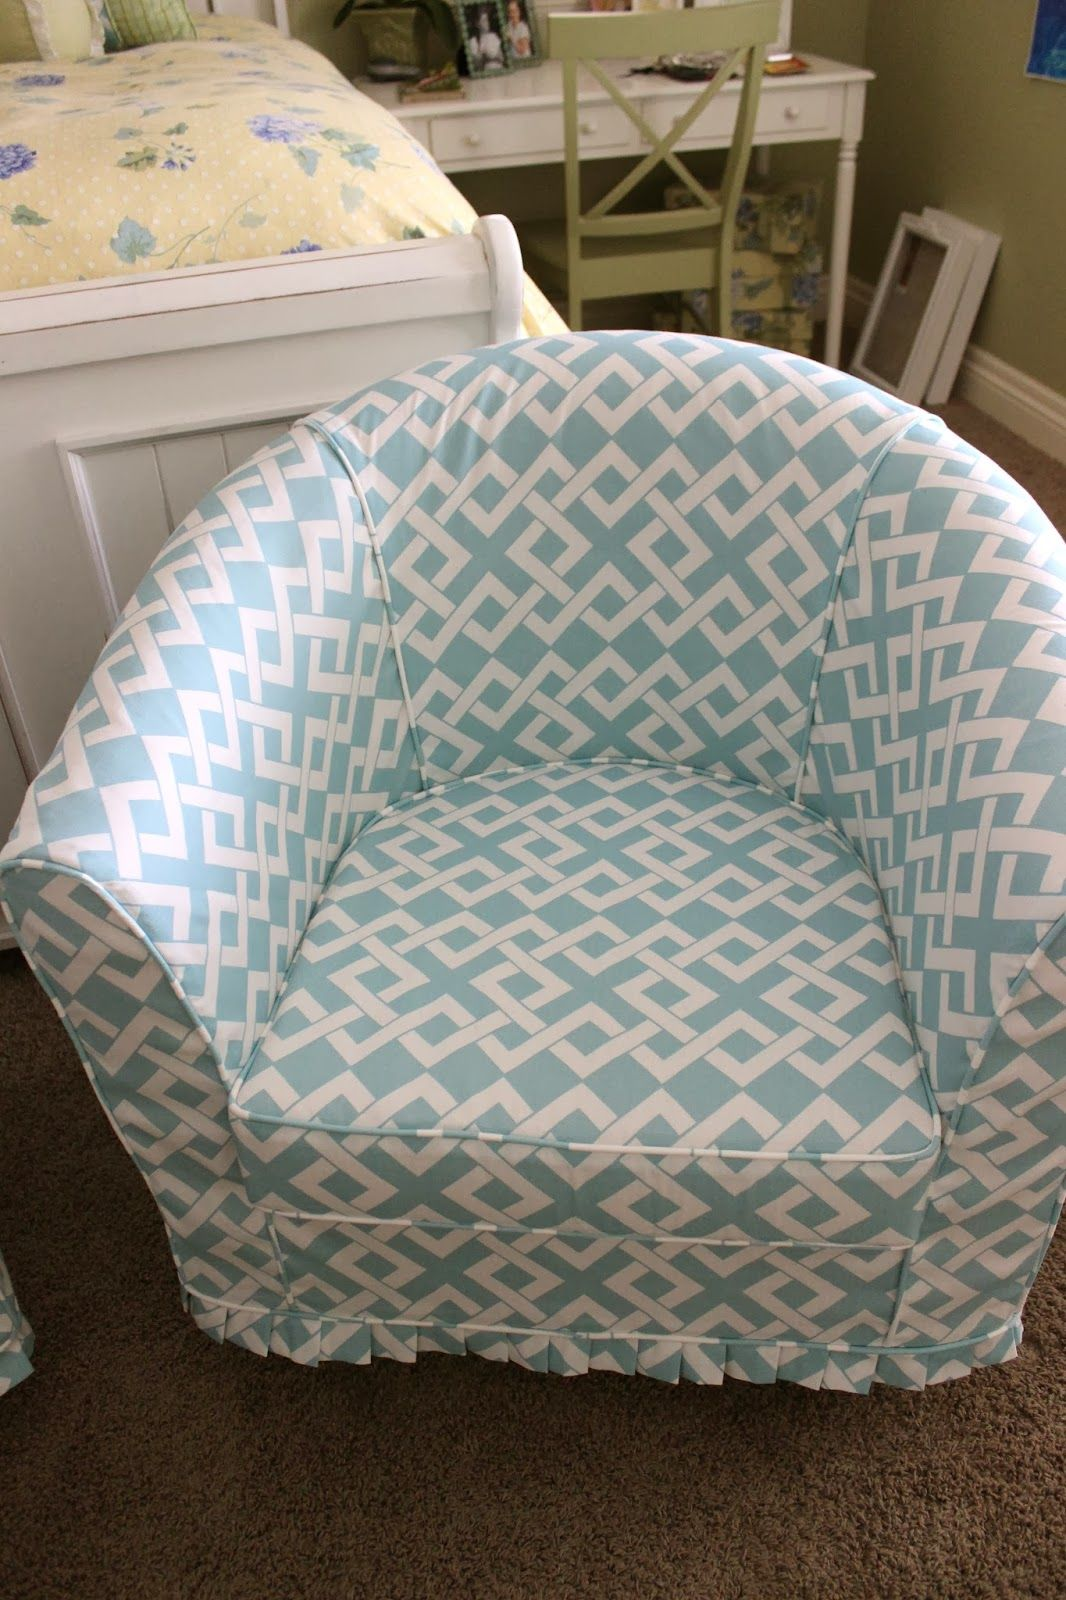 IKEA Barrel Chair Slipcover | There Was Only A Bit Of Matching :)! My